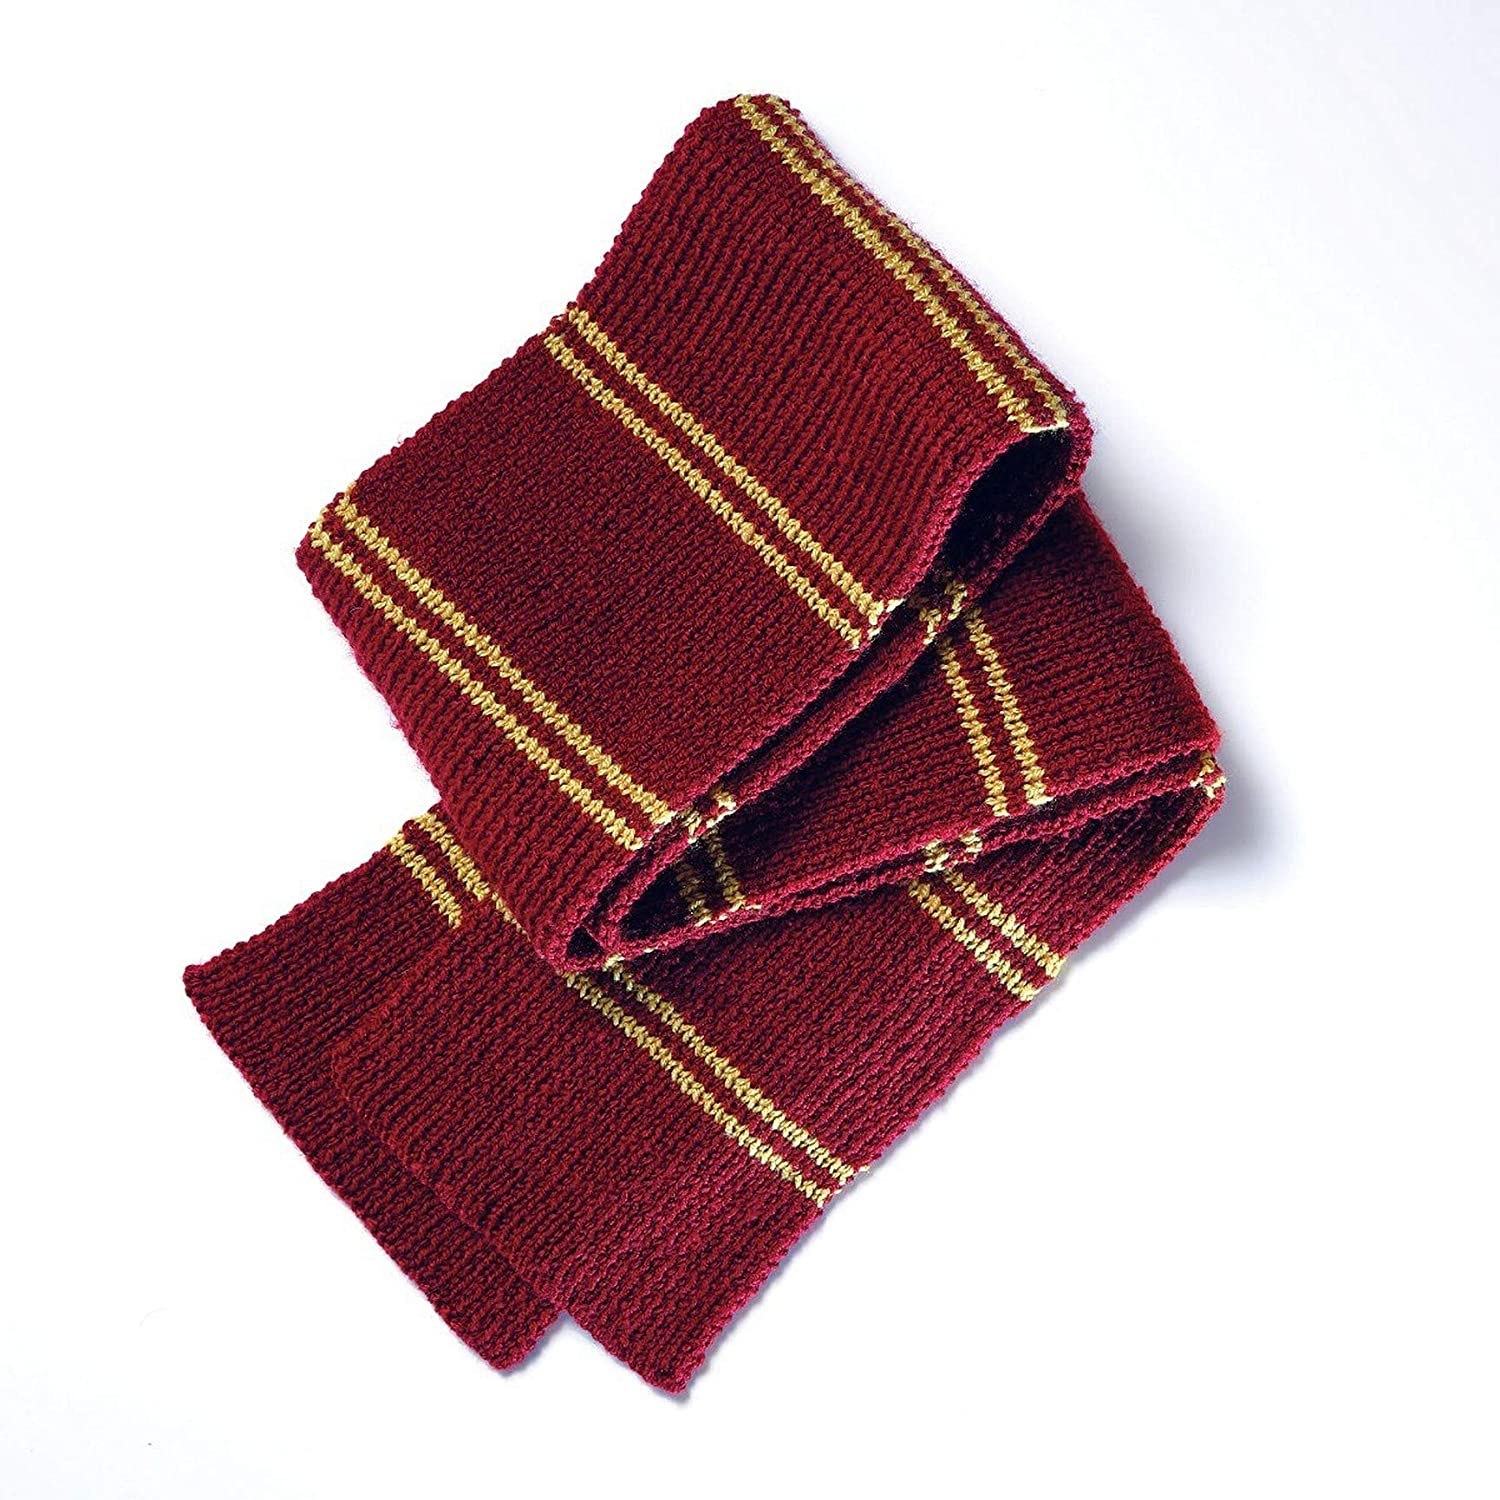 Hogwarts Gryffindor Slouch Socks and Mittens Knitting Kit by Eaglemoss Hero Collector Harry Potter Wizarding World Knitting Kits Collection